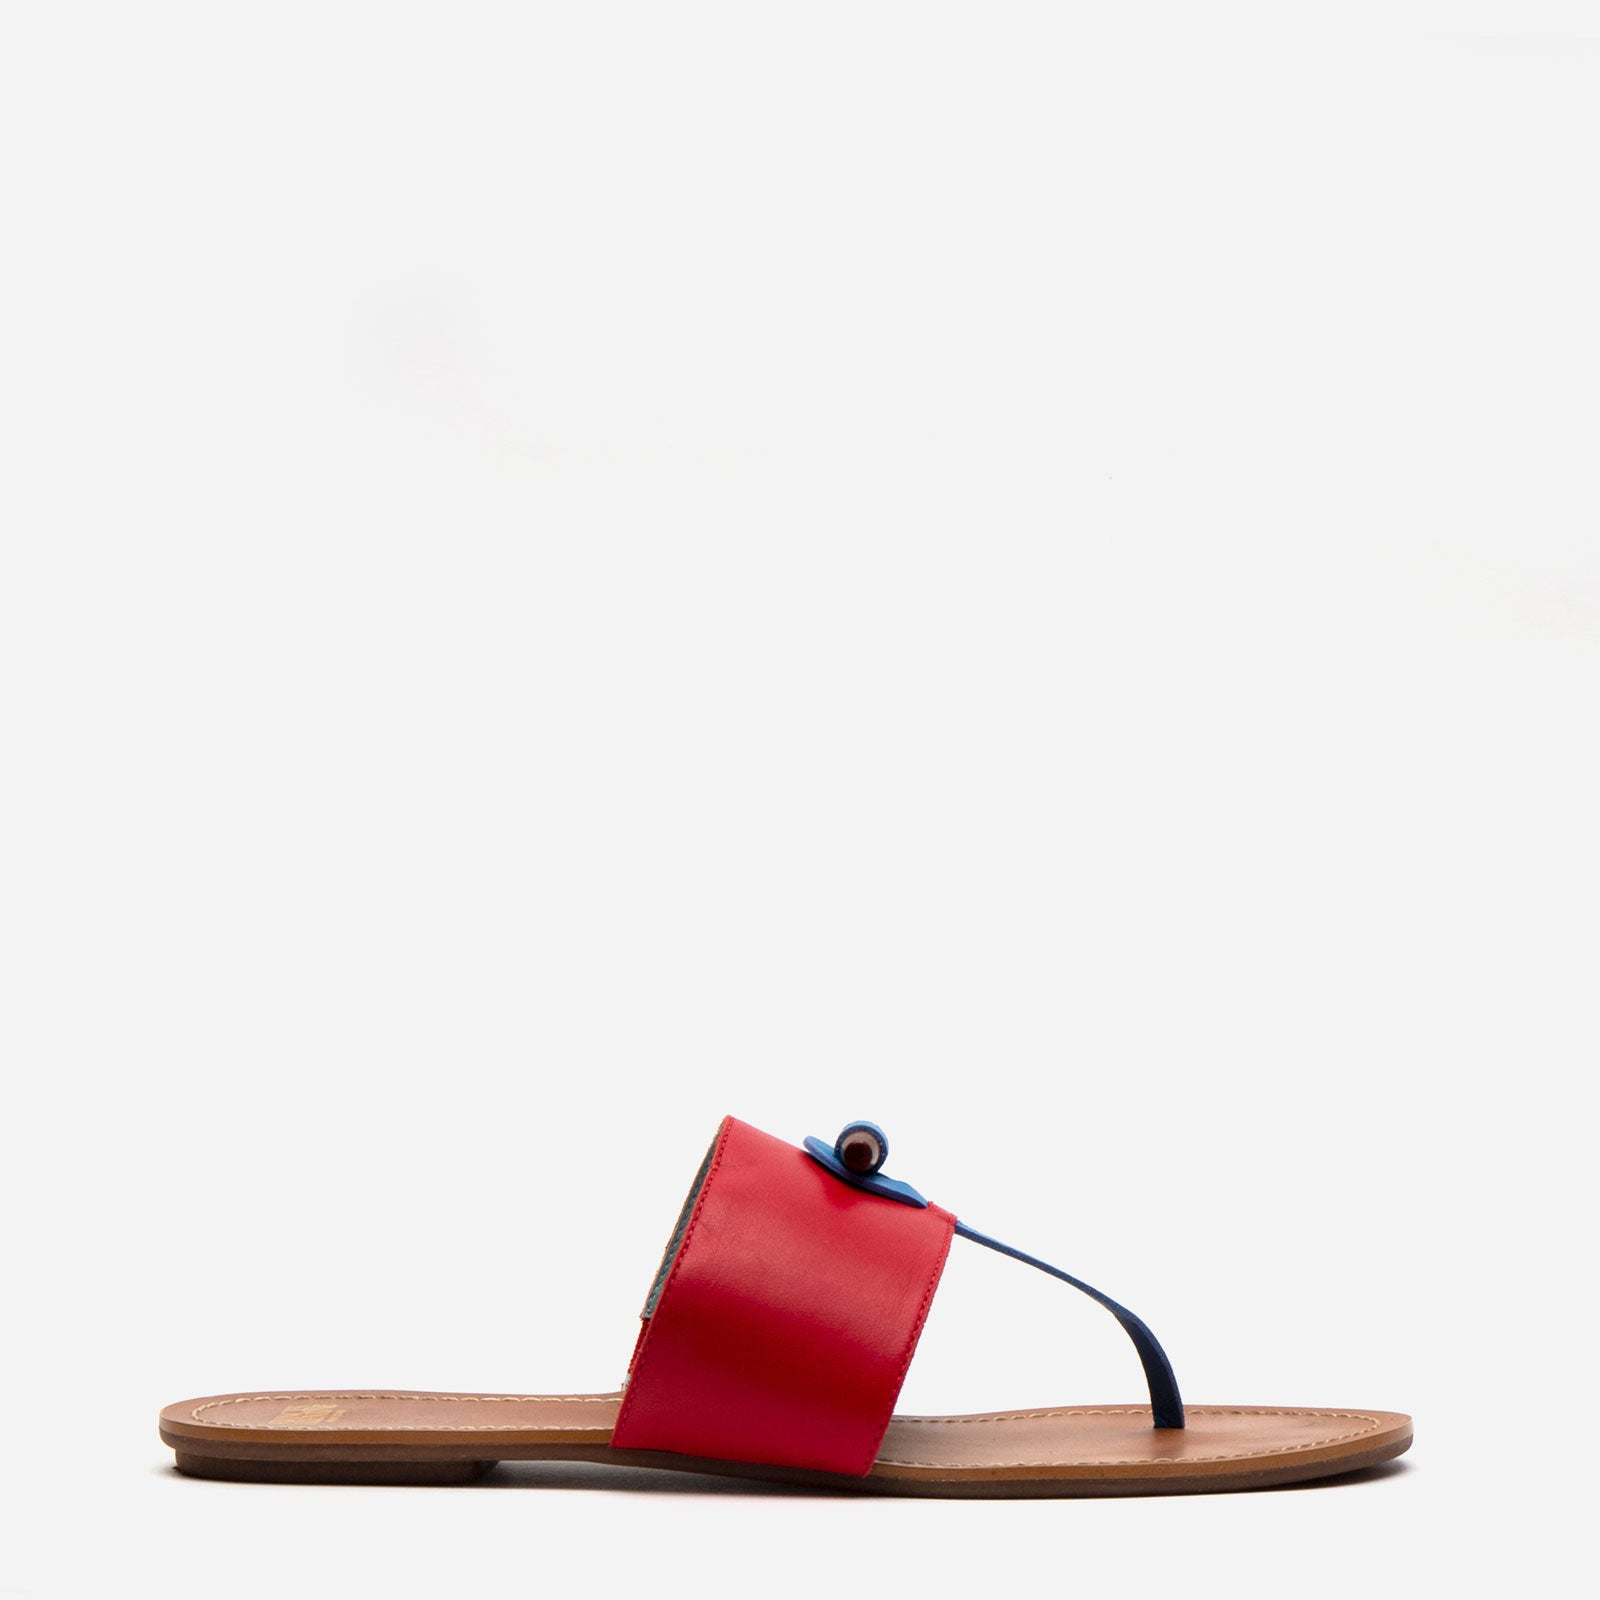 Toggle Leather Sandal Red - Frances Valentine